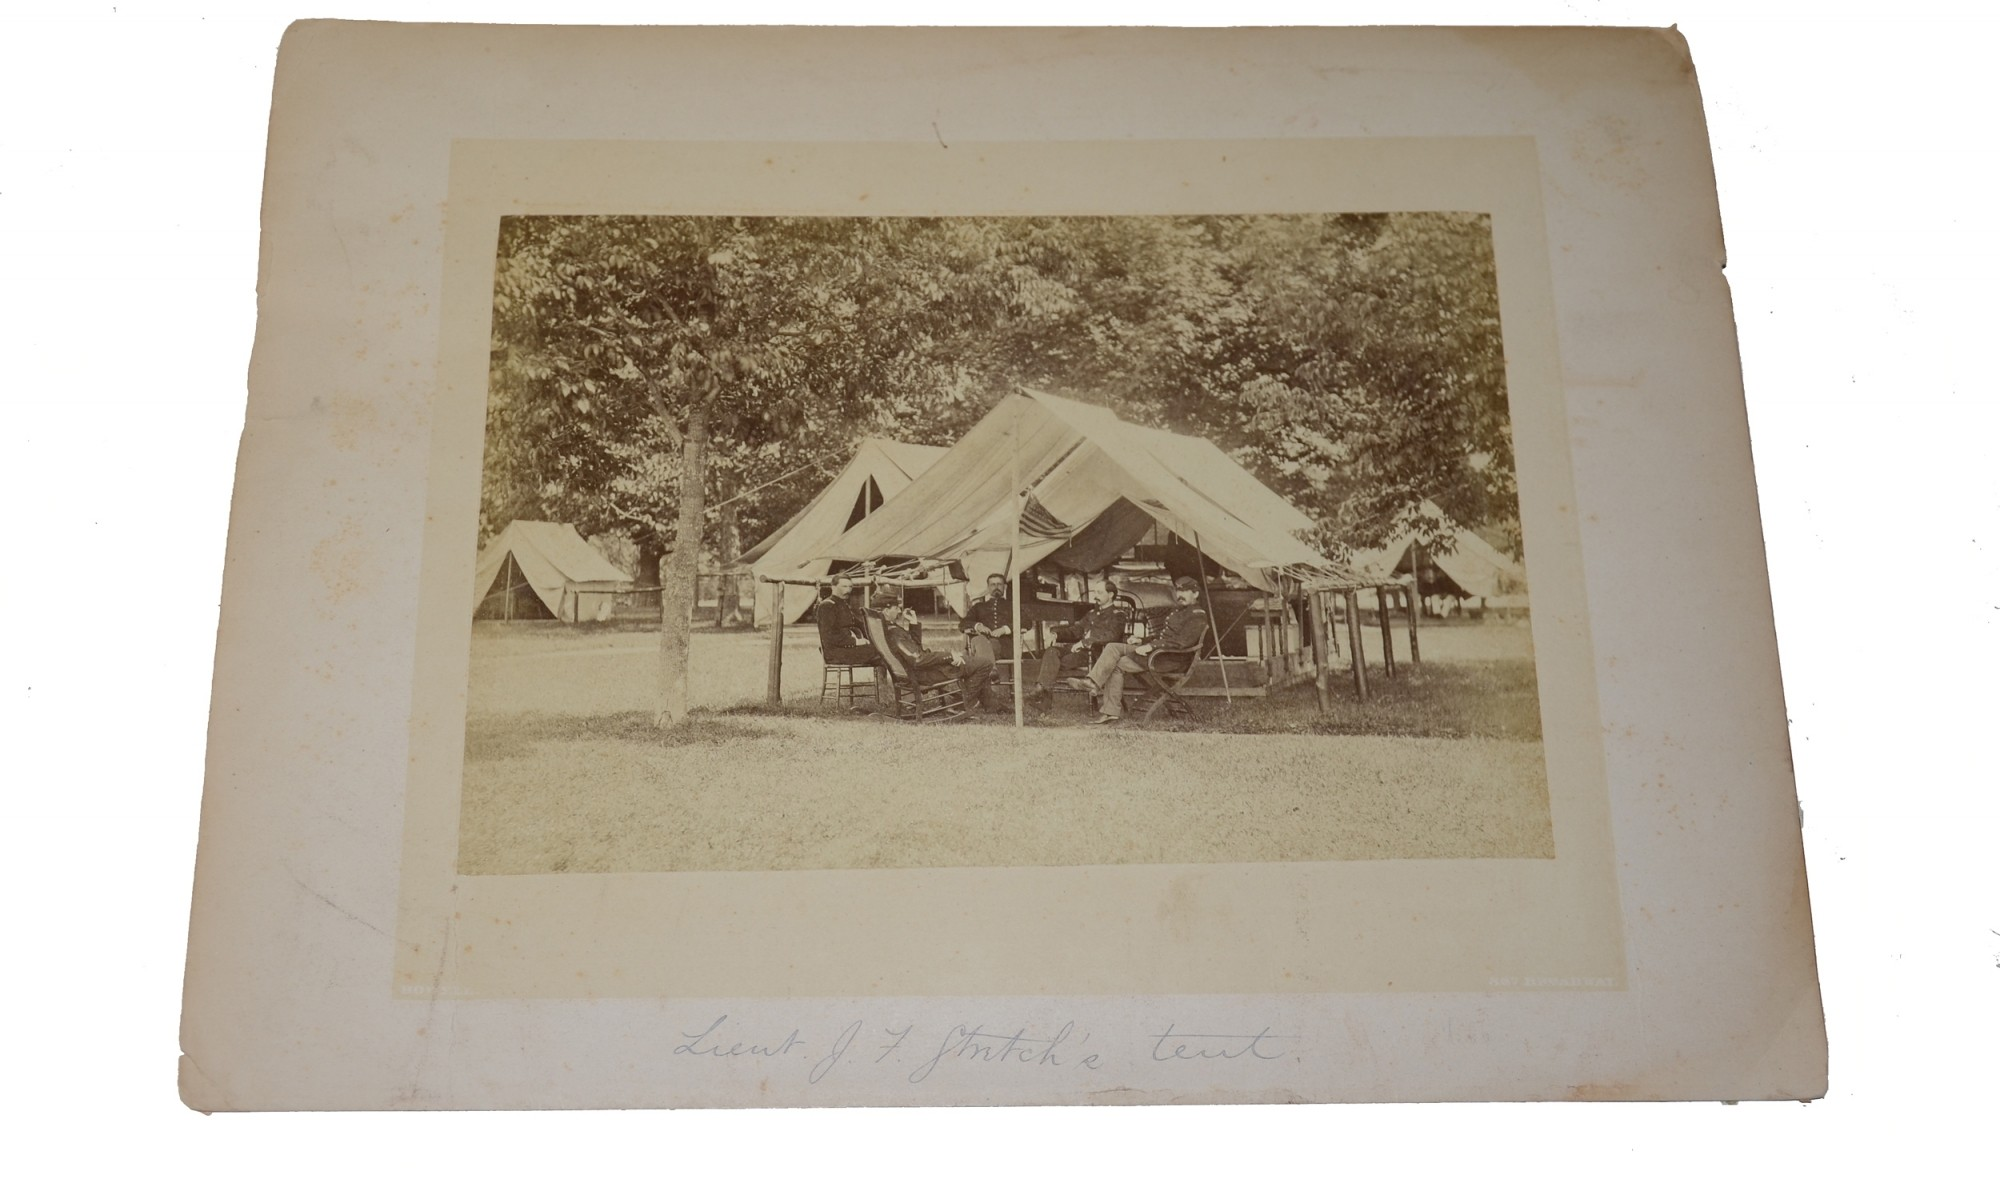 ALBUMEN PHOTO OF OFFICERS IN CAMP